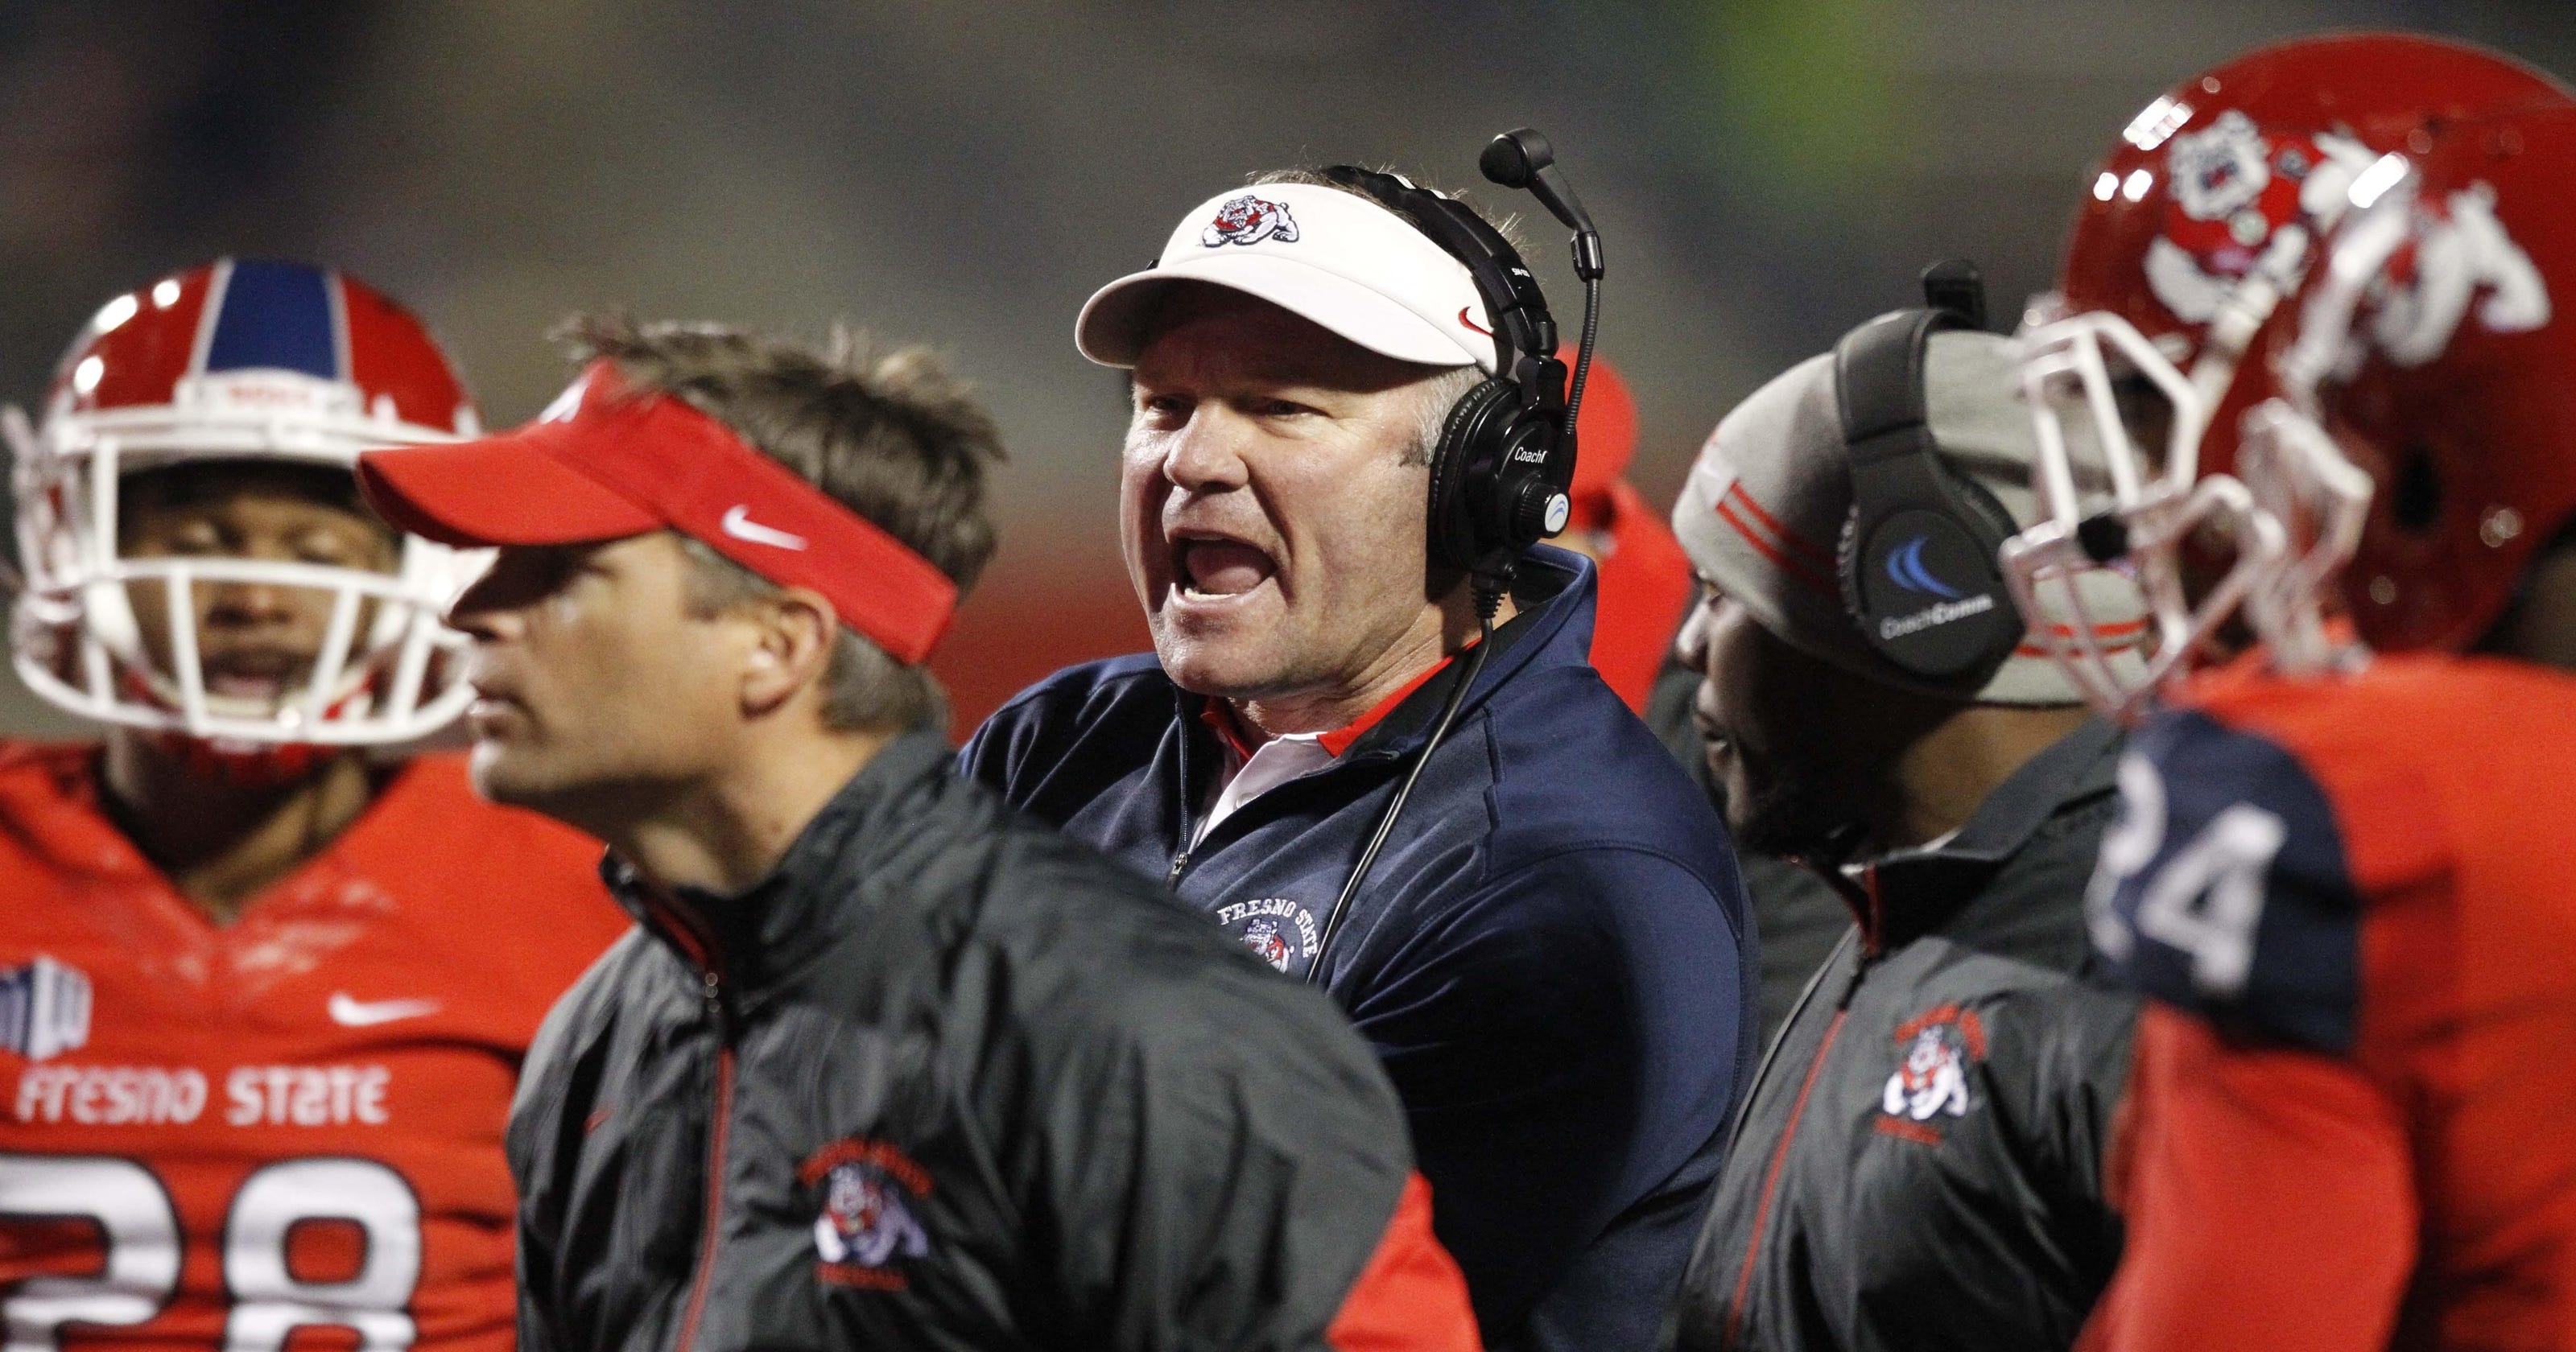 Fresno State Football: Q&A with coach DeRuyter